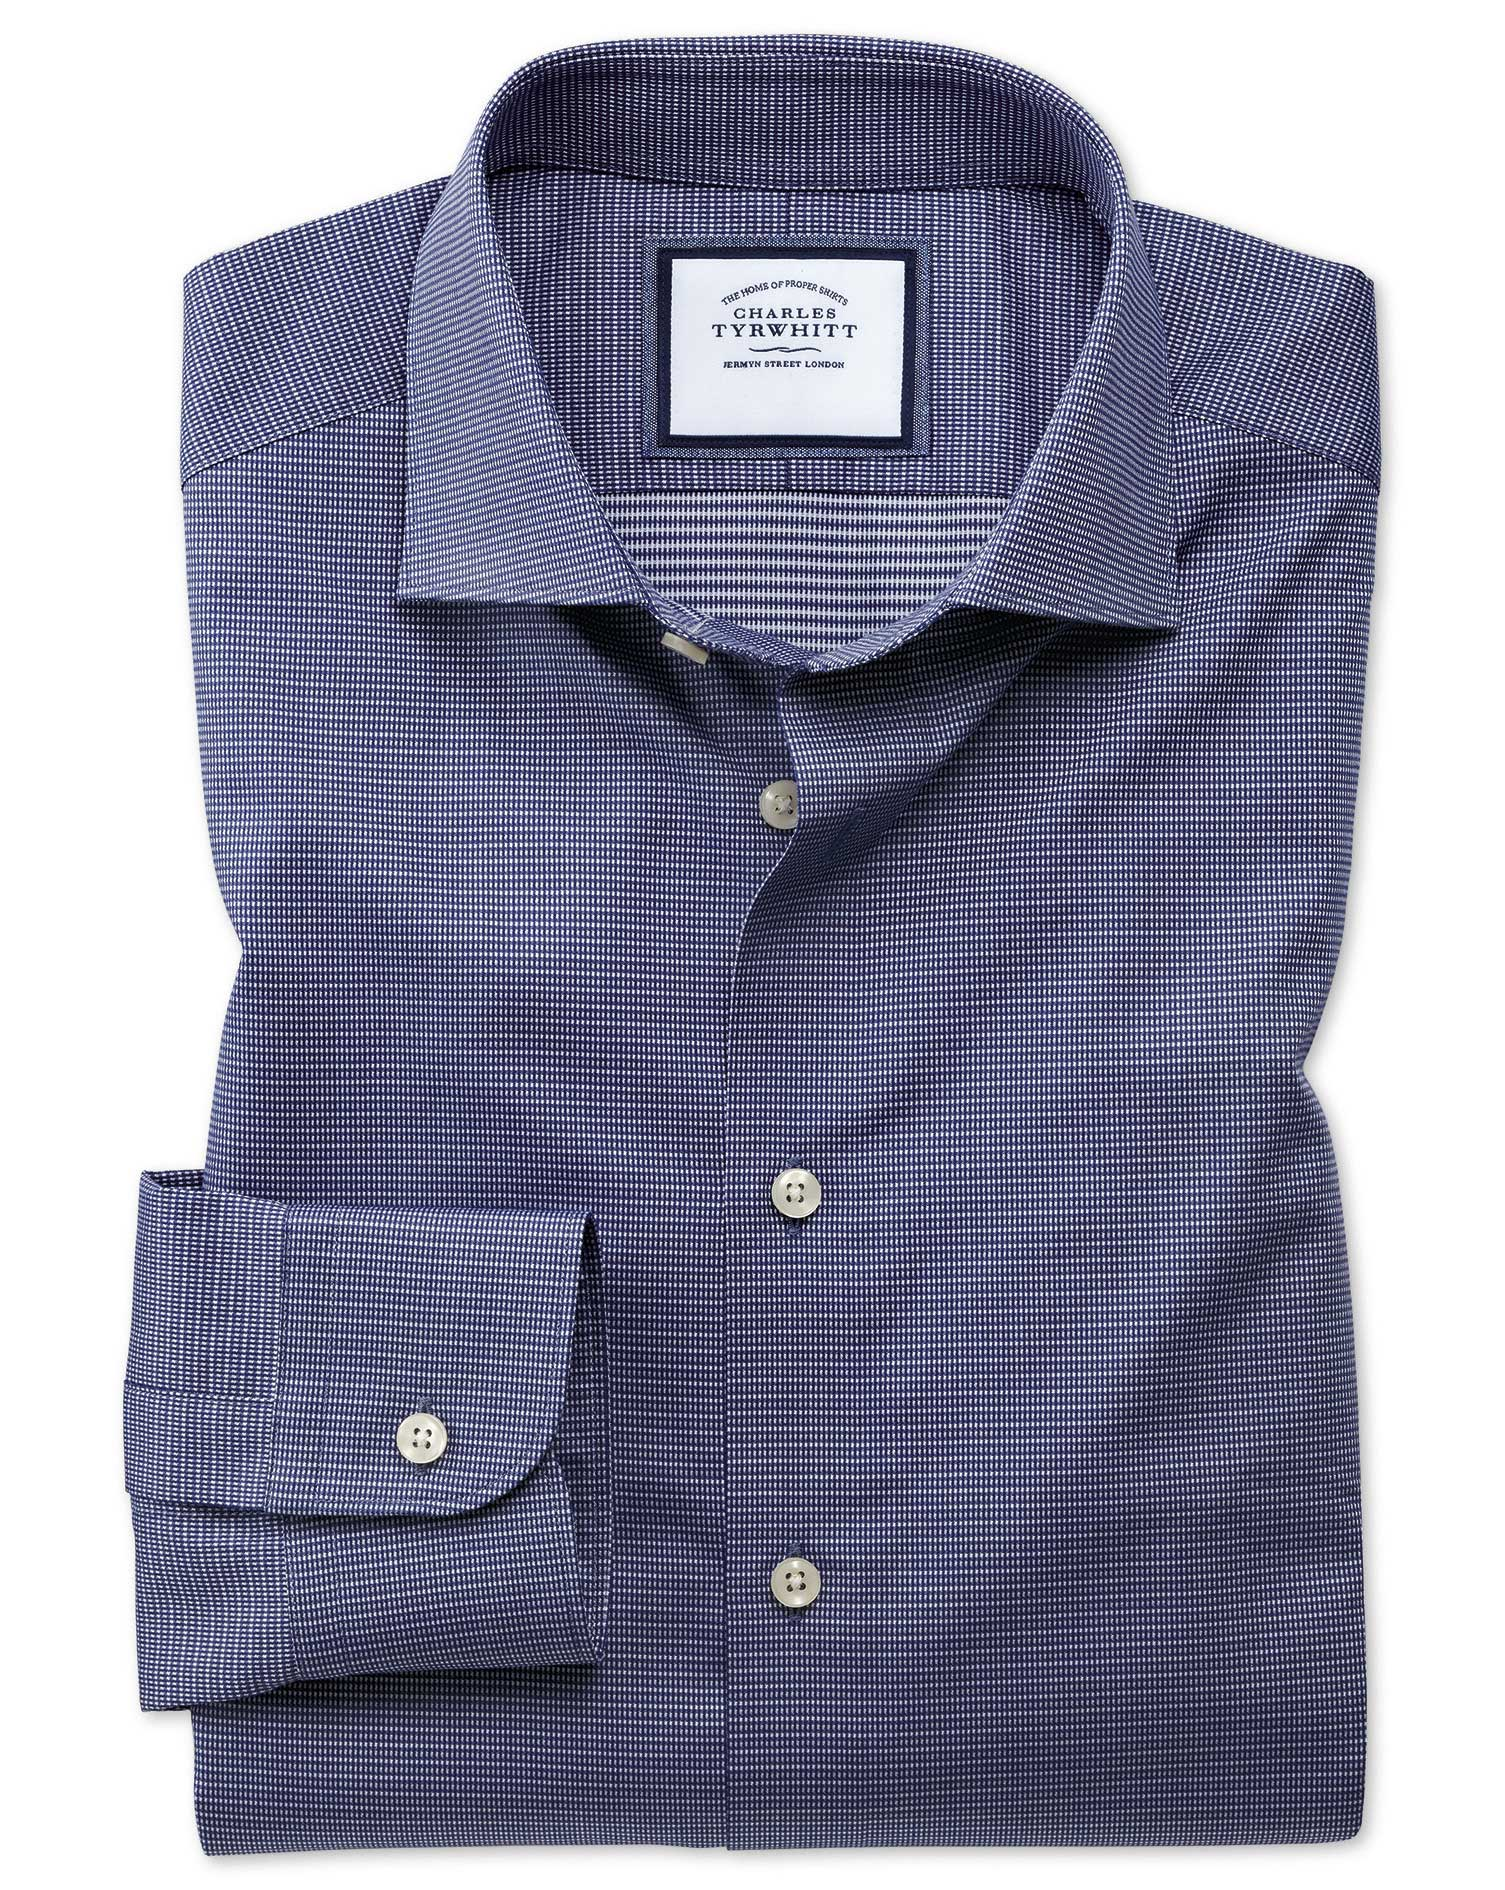 Slim Fit Semi-Cutaway Business Casual Navy Multi Puppytooth Cotton Formal Shirt Single Cuff Size 17.